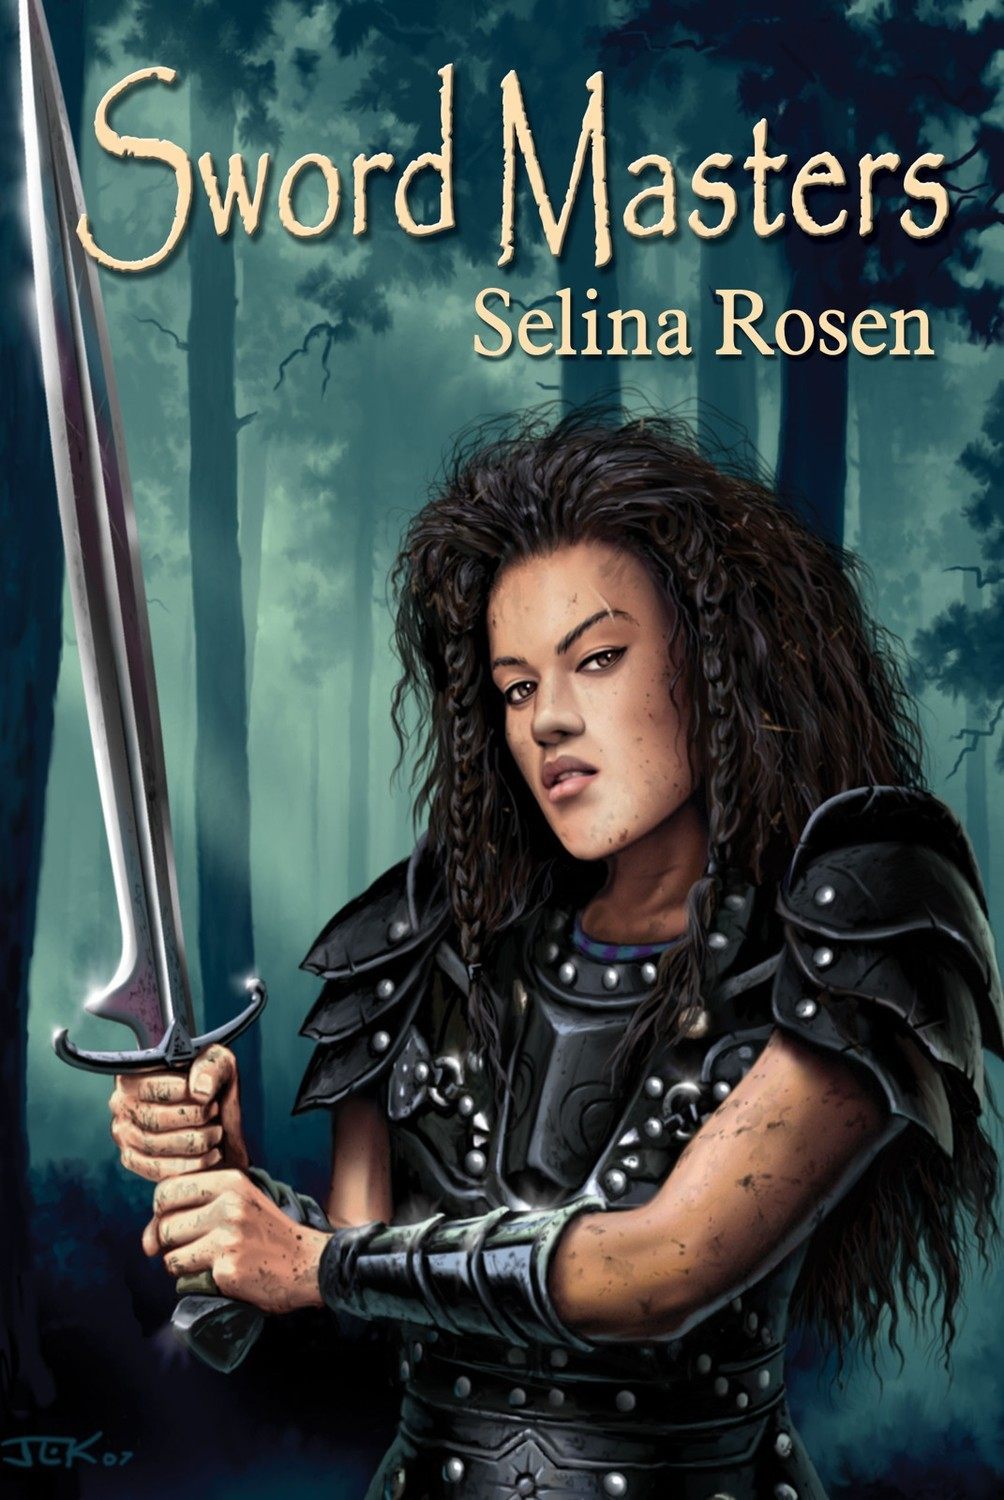 Sword Masters by Selina Rosen